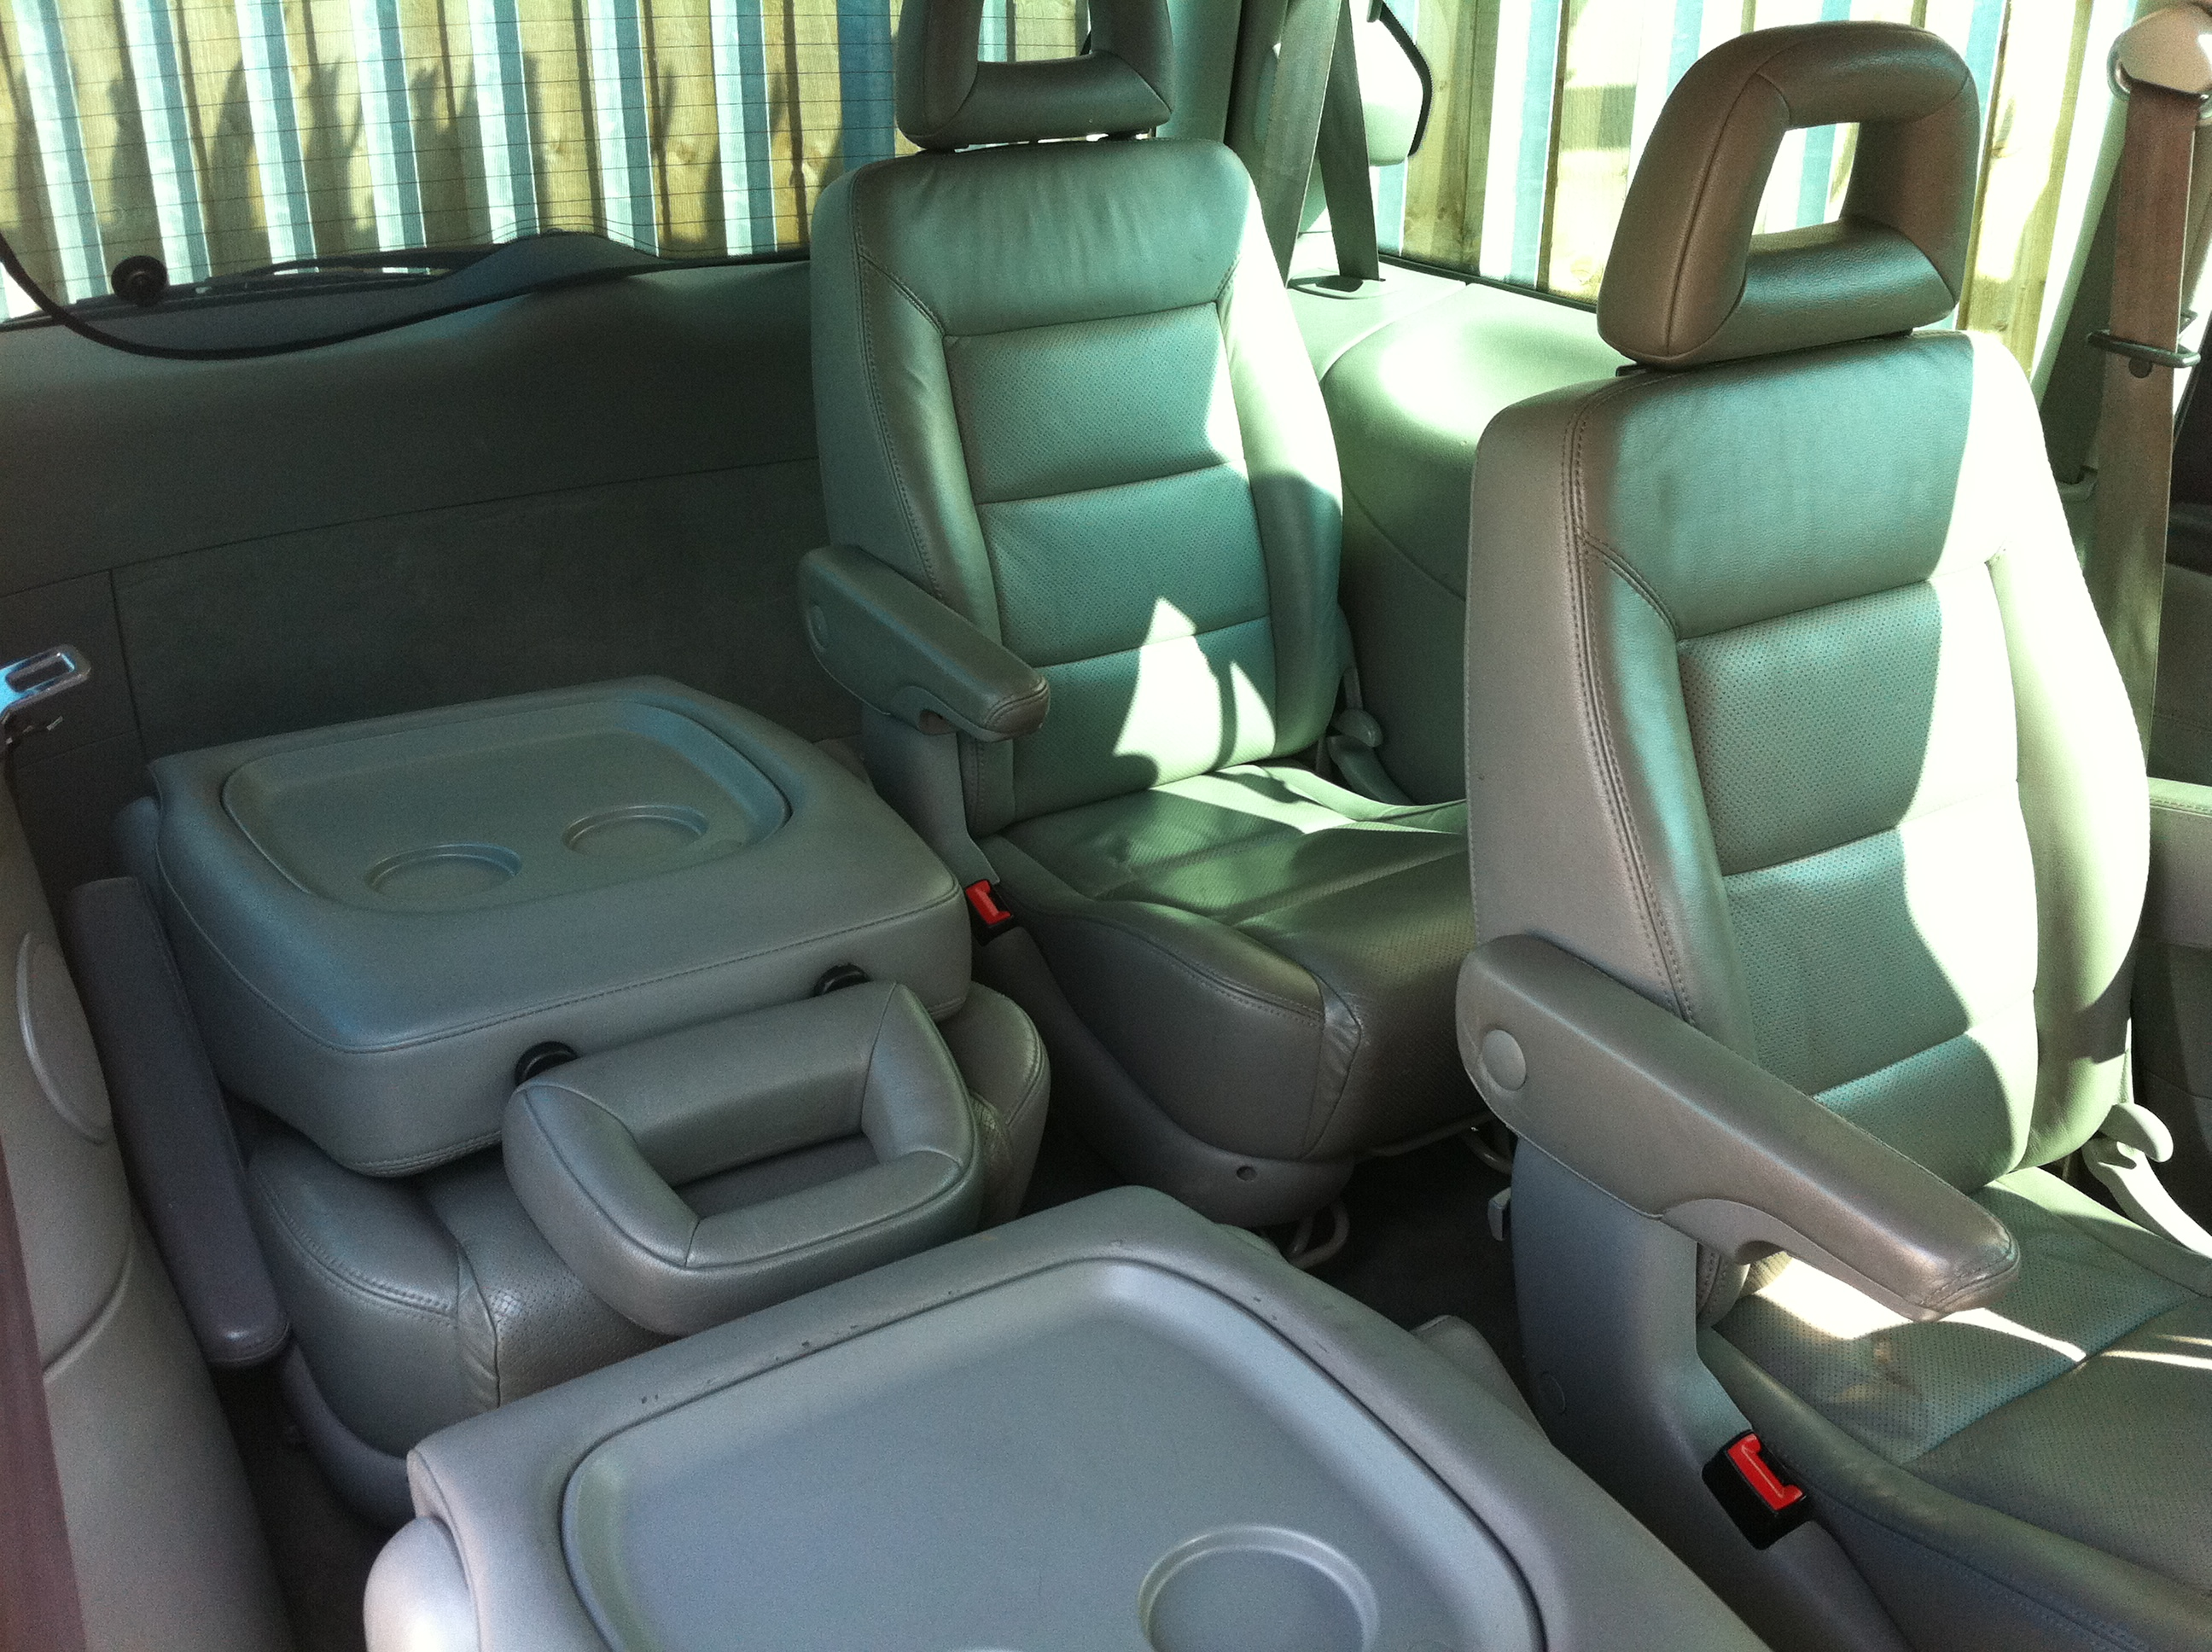 Air Conditioning Vents >> FORD GALAXY 1.9 TD GHIA 5DR [115 PS] FULL SERVICE HISTORY / 6 SEATS / DVD / FULL GREY LEATHER ...